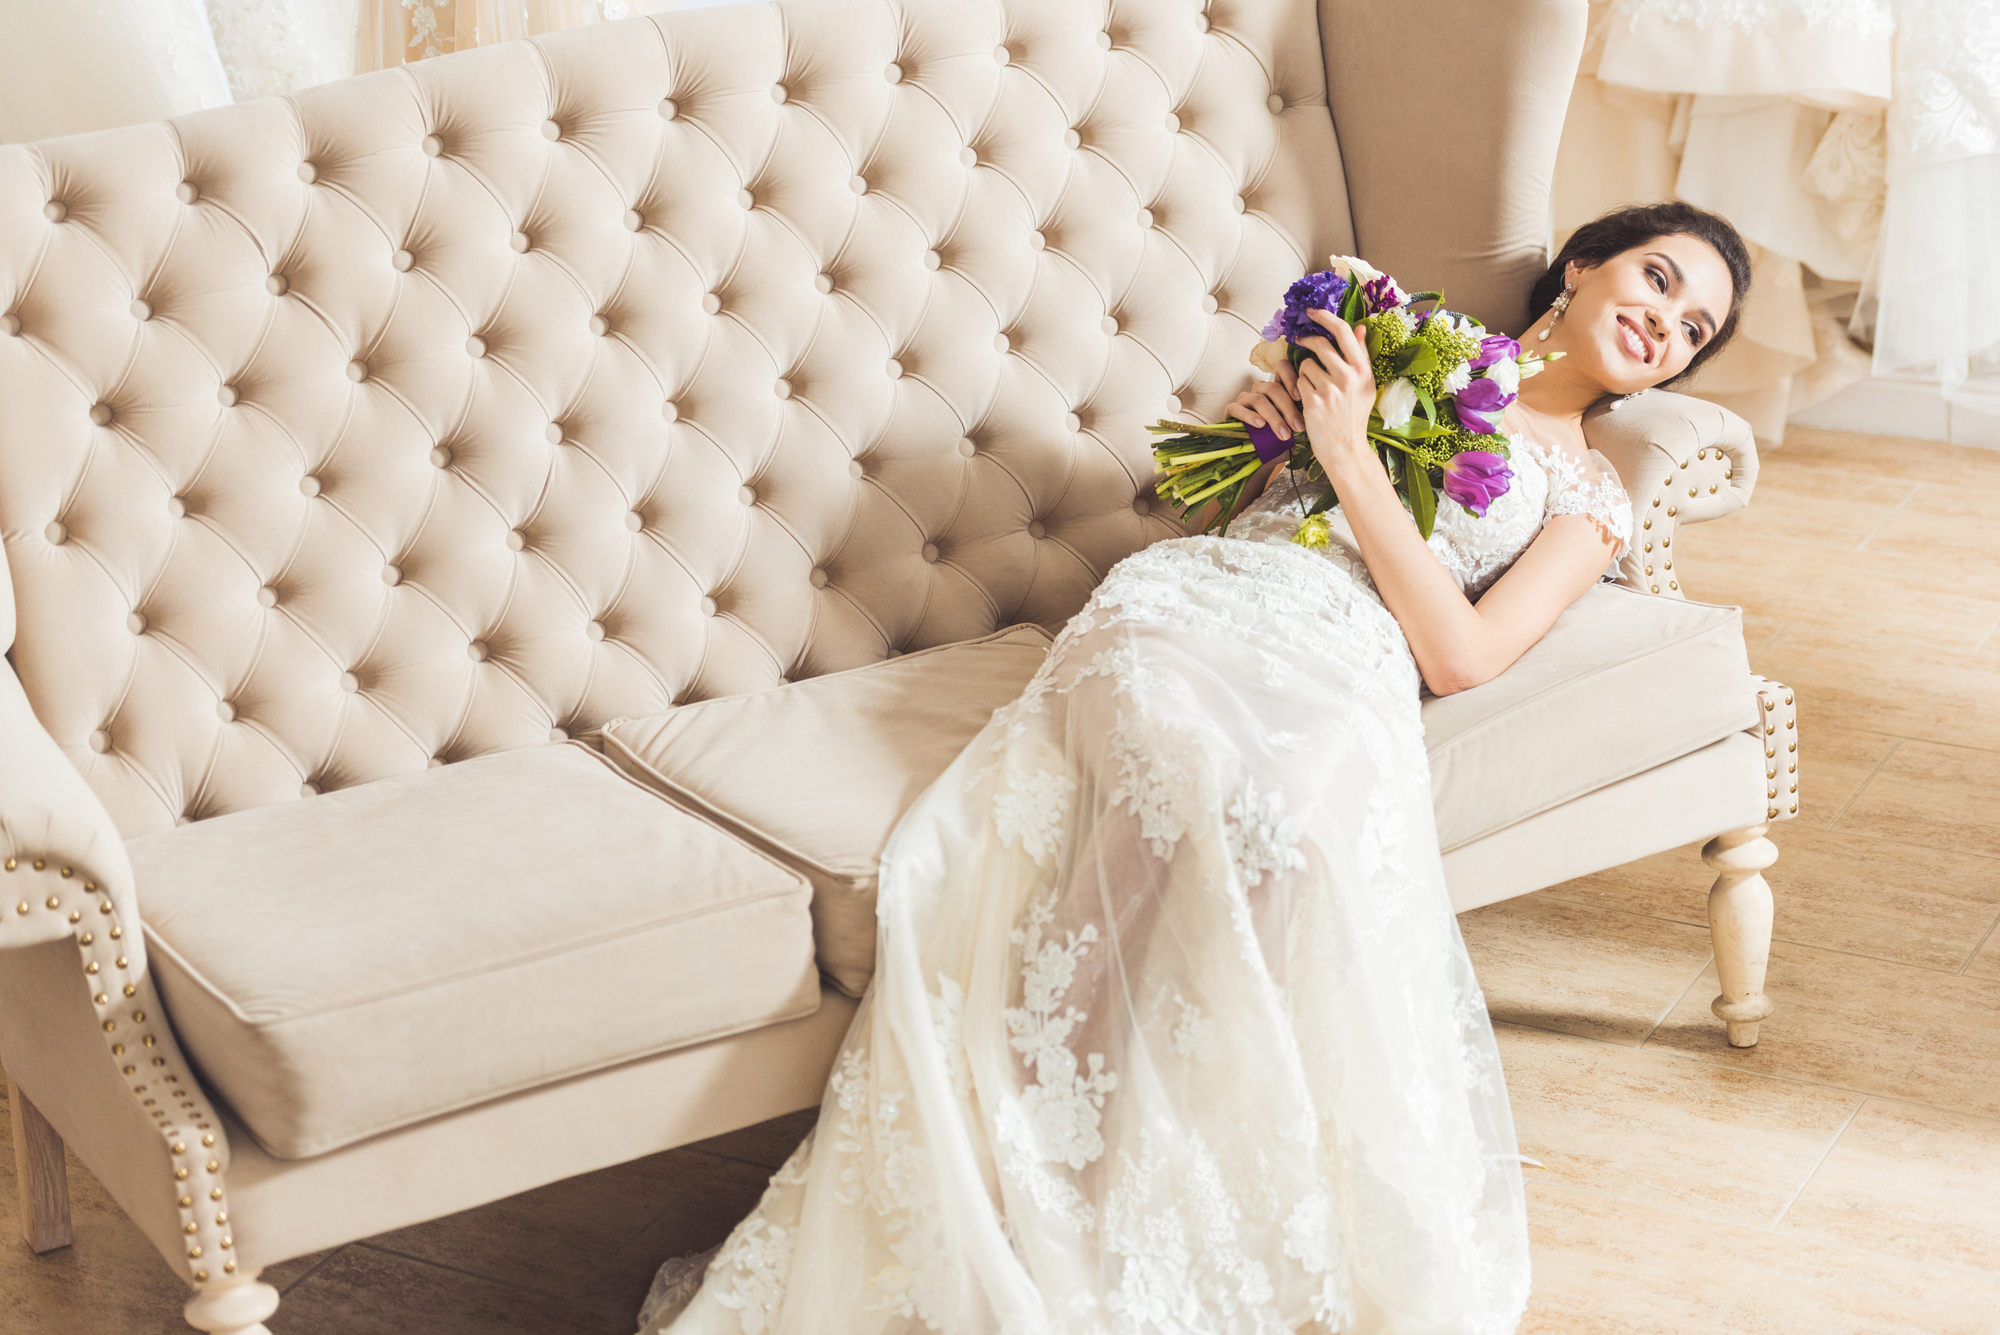 3 Reasons to Shop Local for Your Wedding Dress